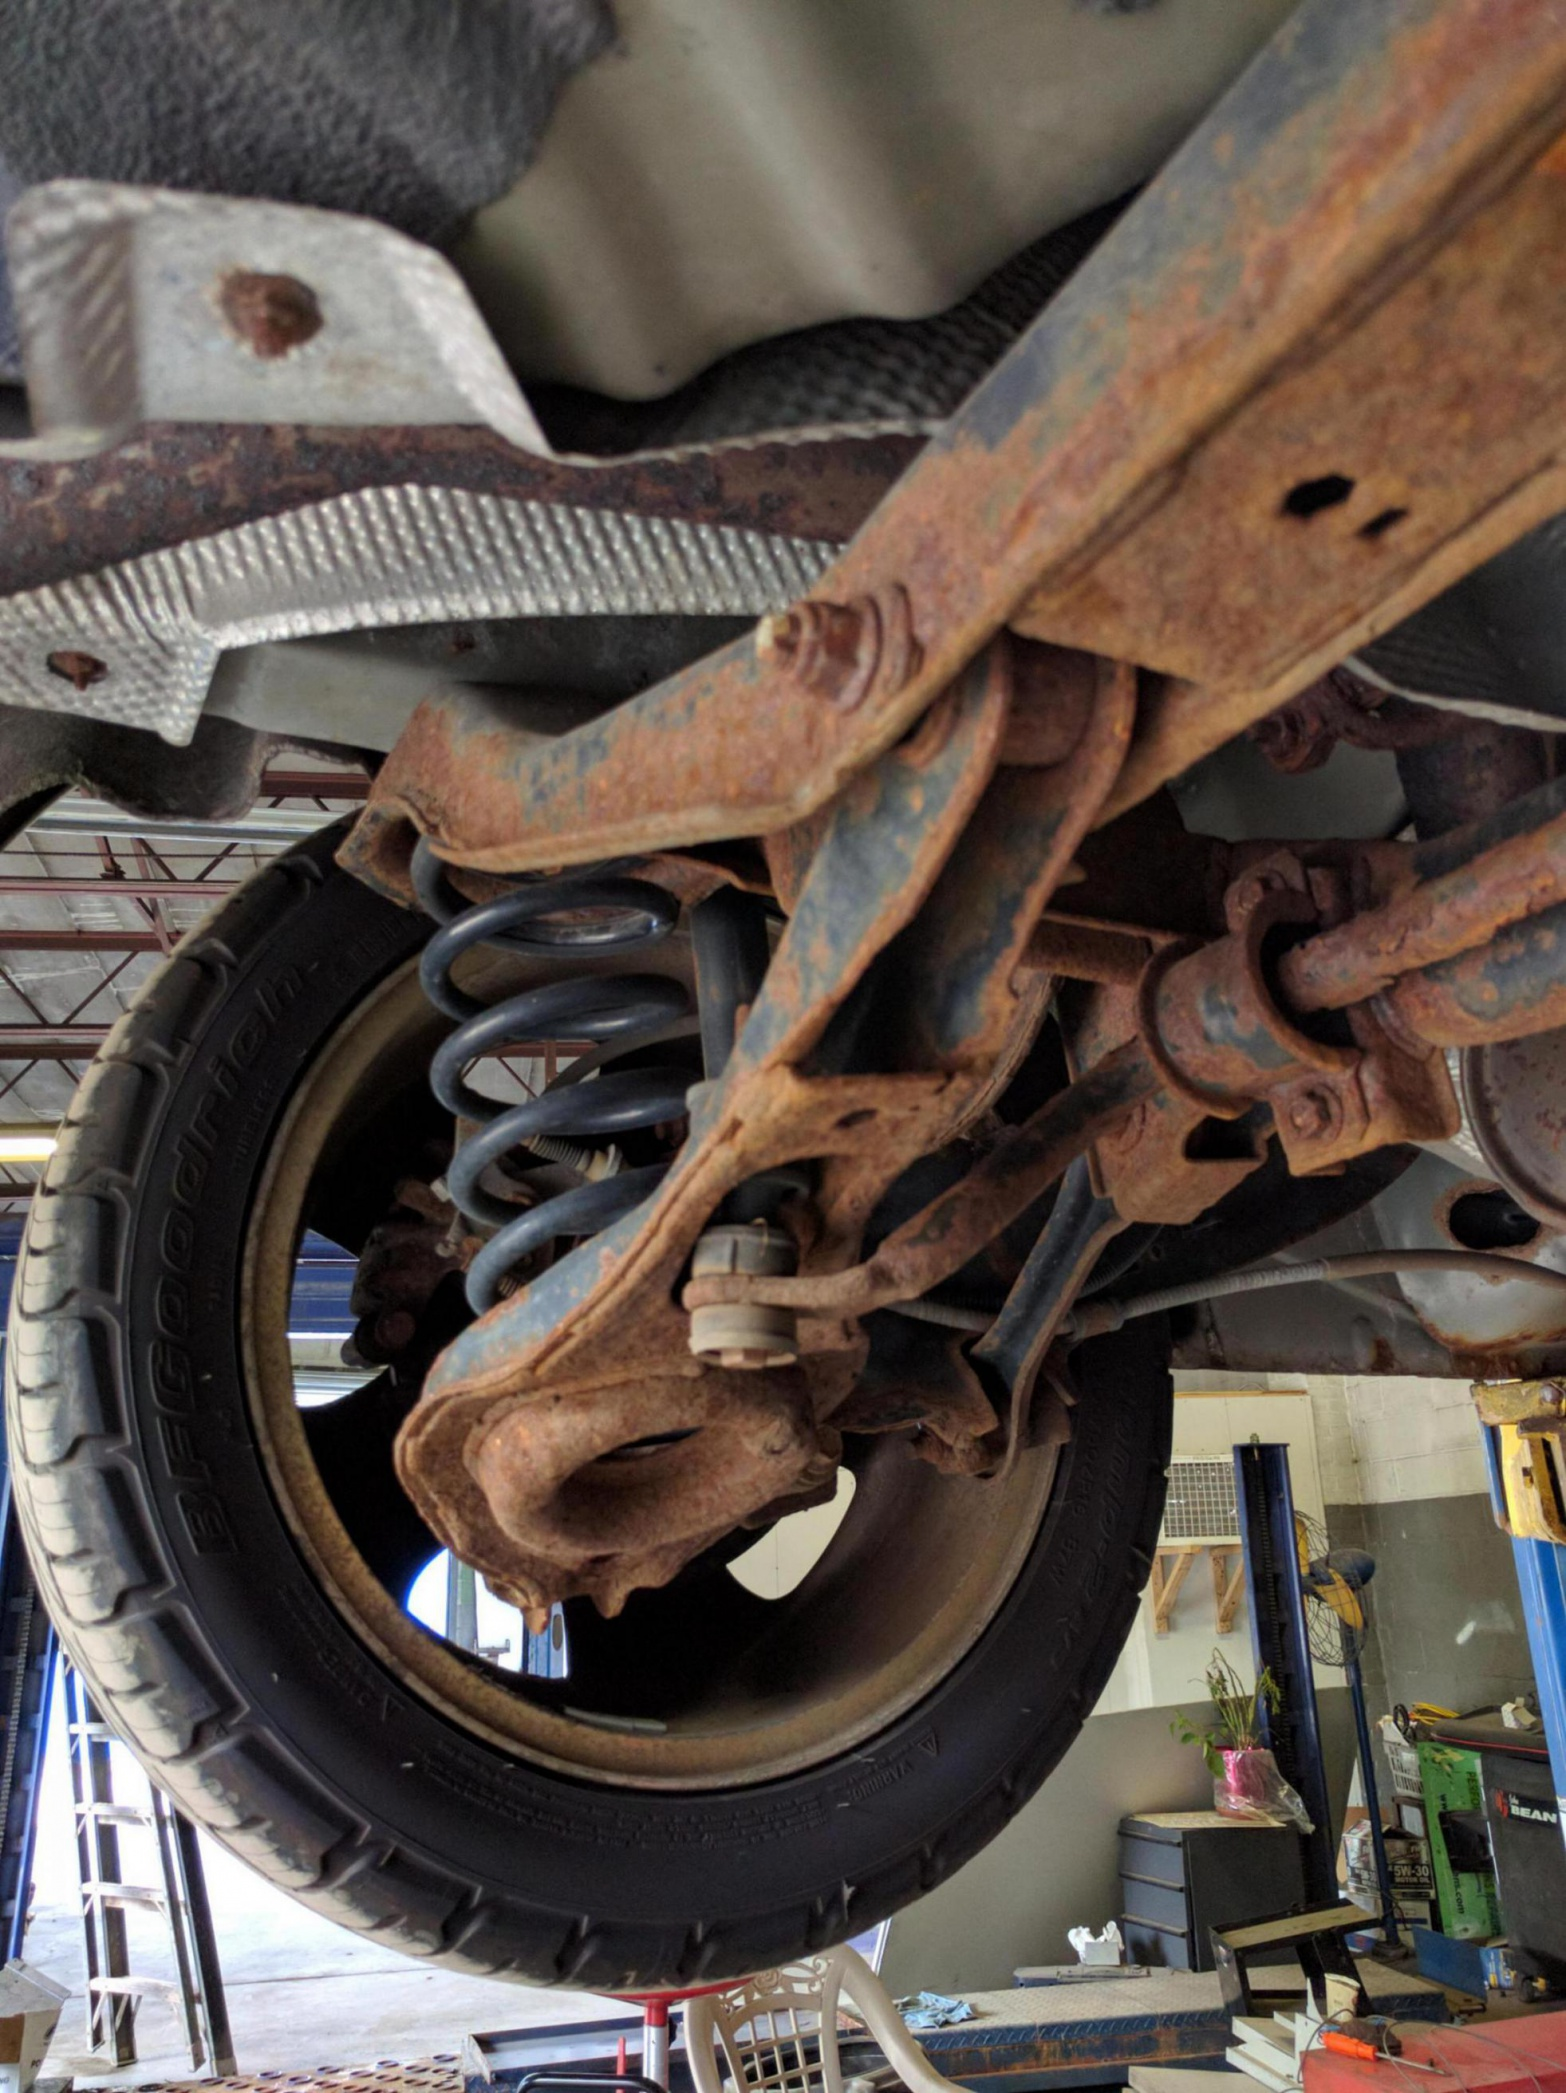 2005 Zx4 Rust On Rear Axle Ford Focus Forum Ford Focus